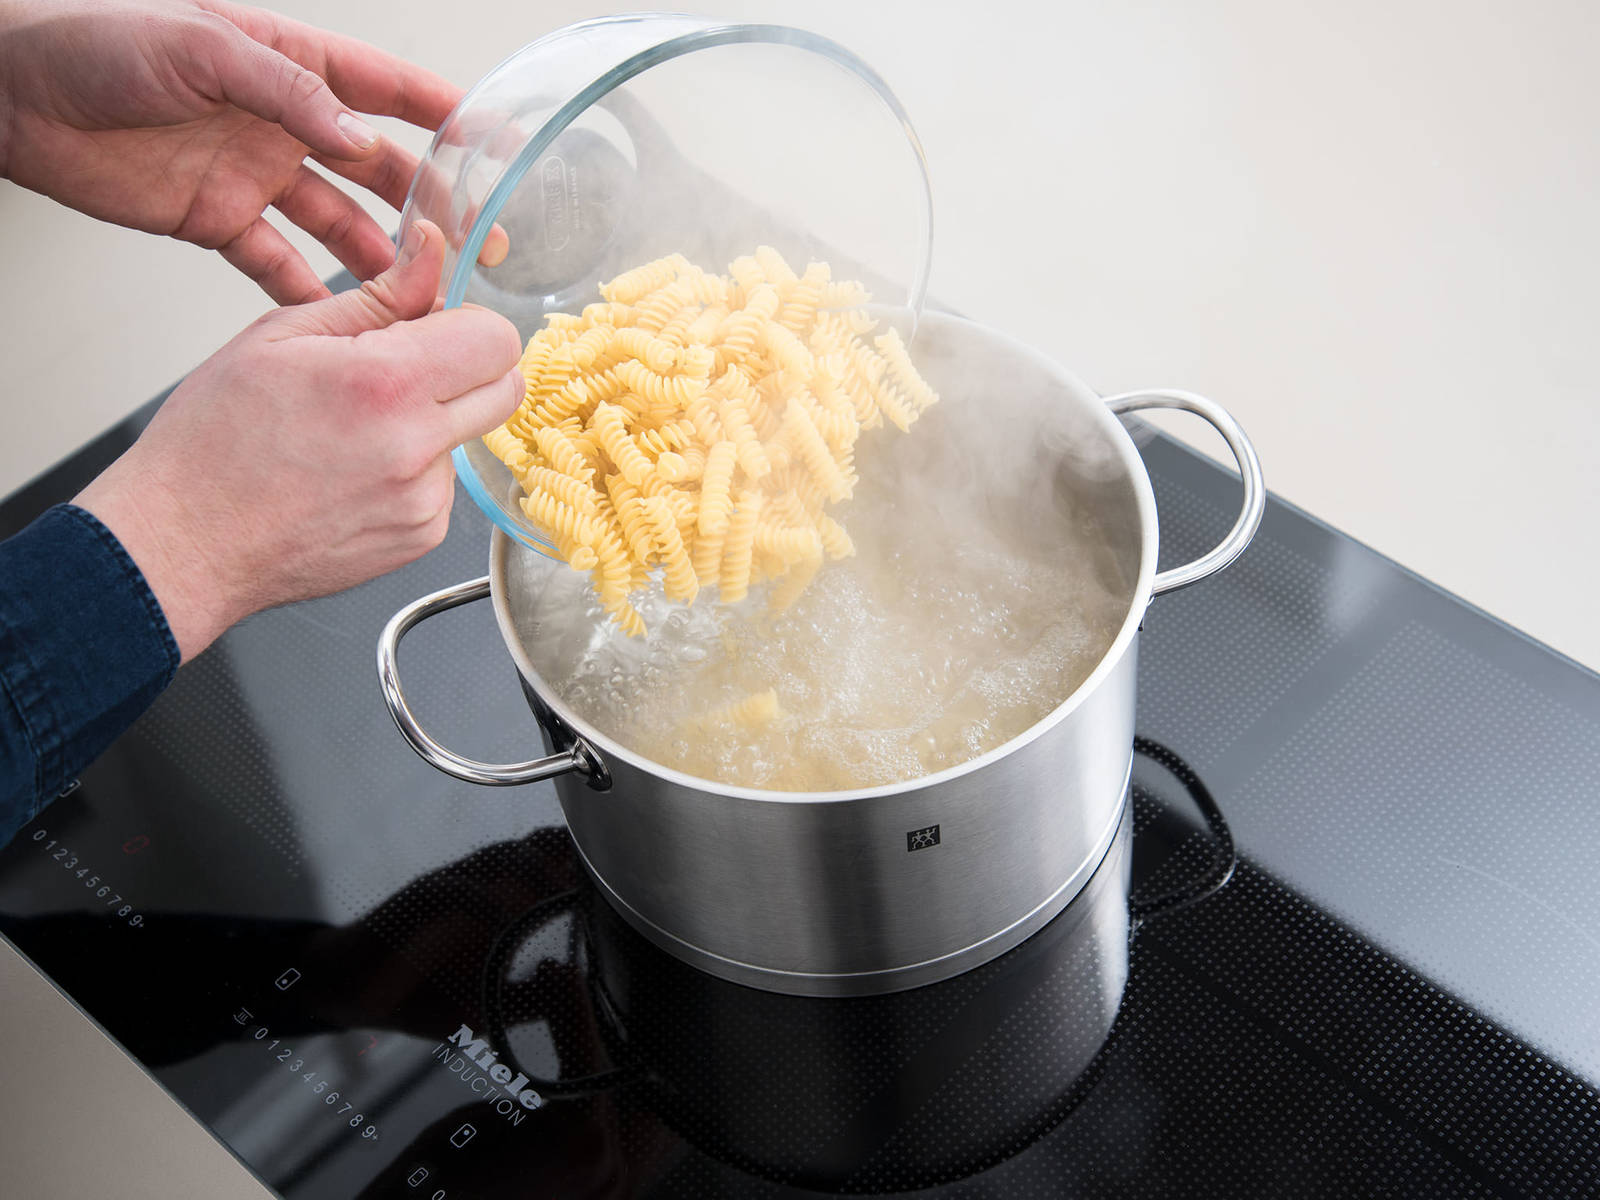 In a pot, bring some water to a boil, add salt and cook pasta according to package instructions until al dente. In the meantime, preheat oven to 200°C/390°F.